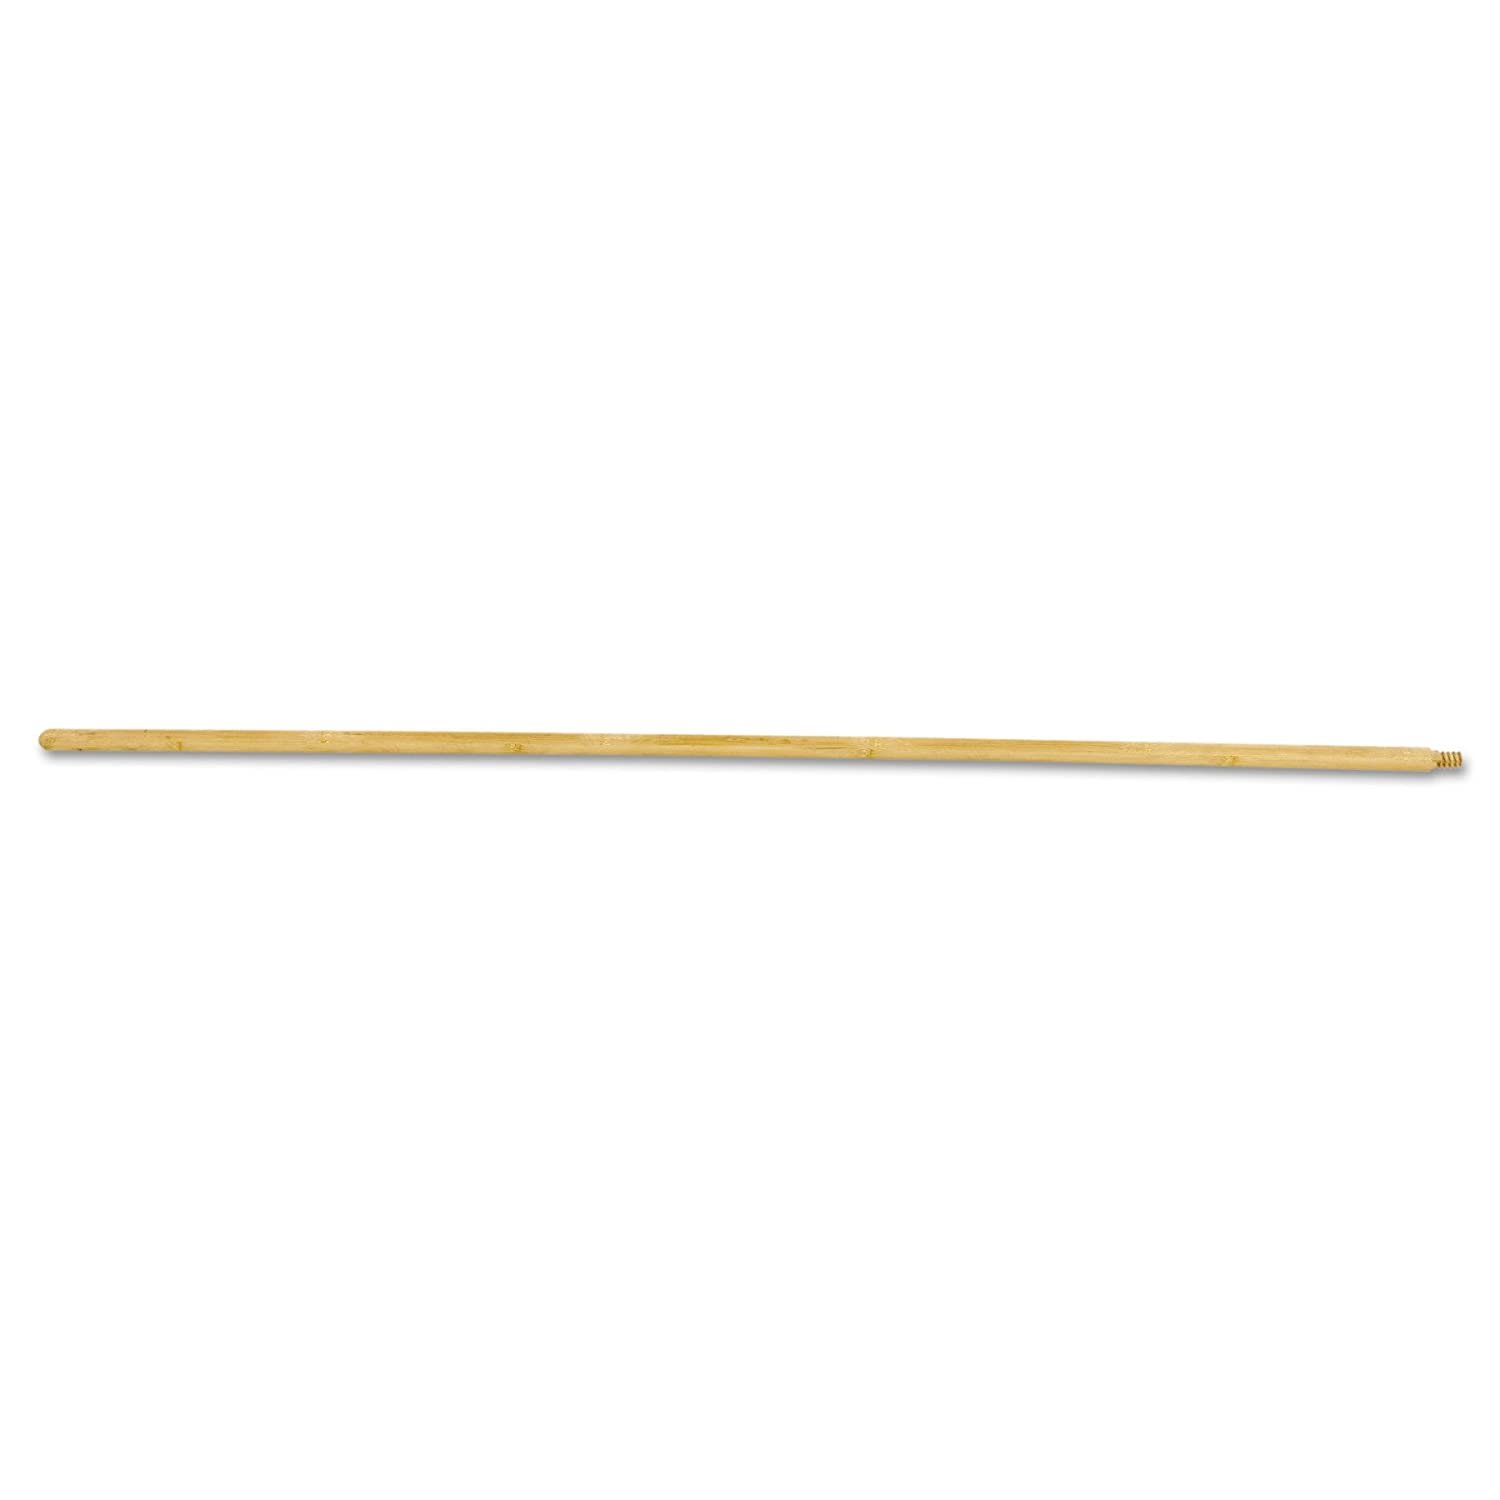 Boardwalk 121 Threaded End Broom Handle, Lacquered Hardwood, 15/16 dia x 54, Natural LAGASSE Inc. BWK 121 ZXA05219